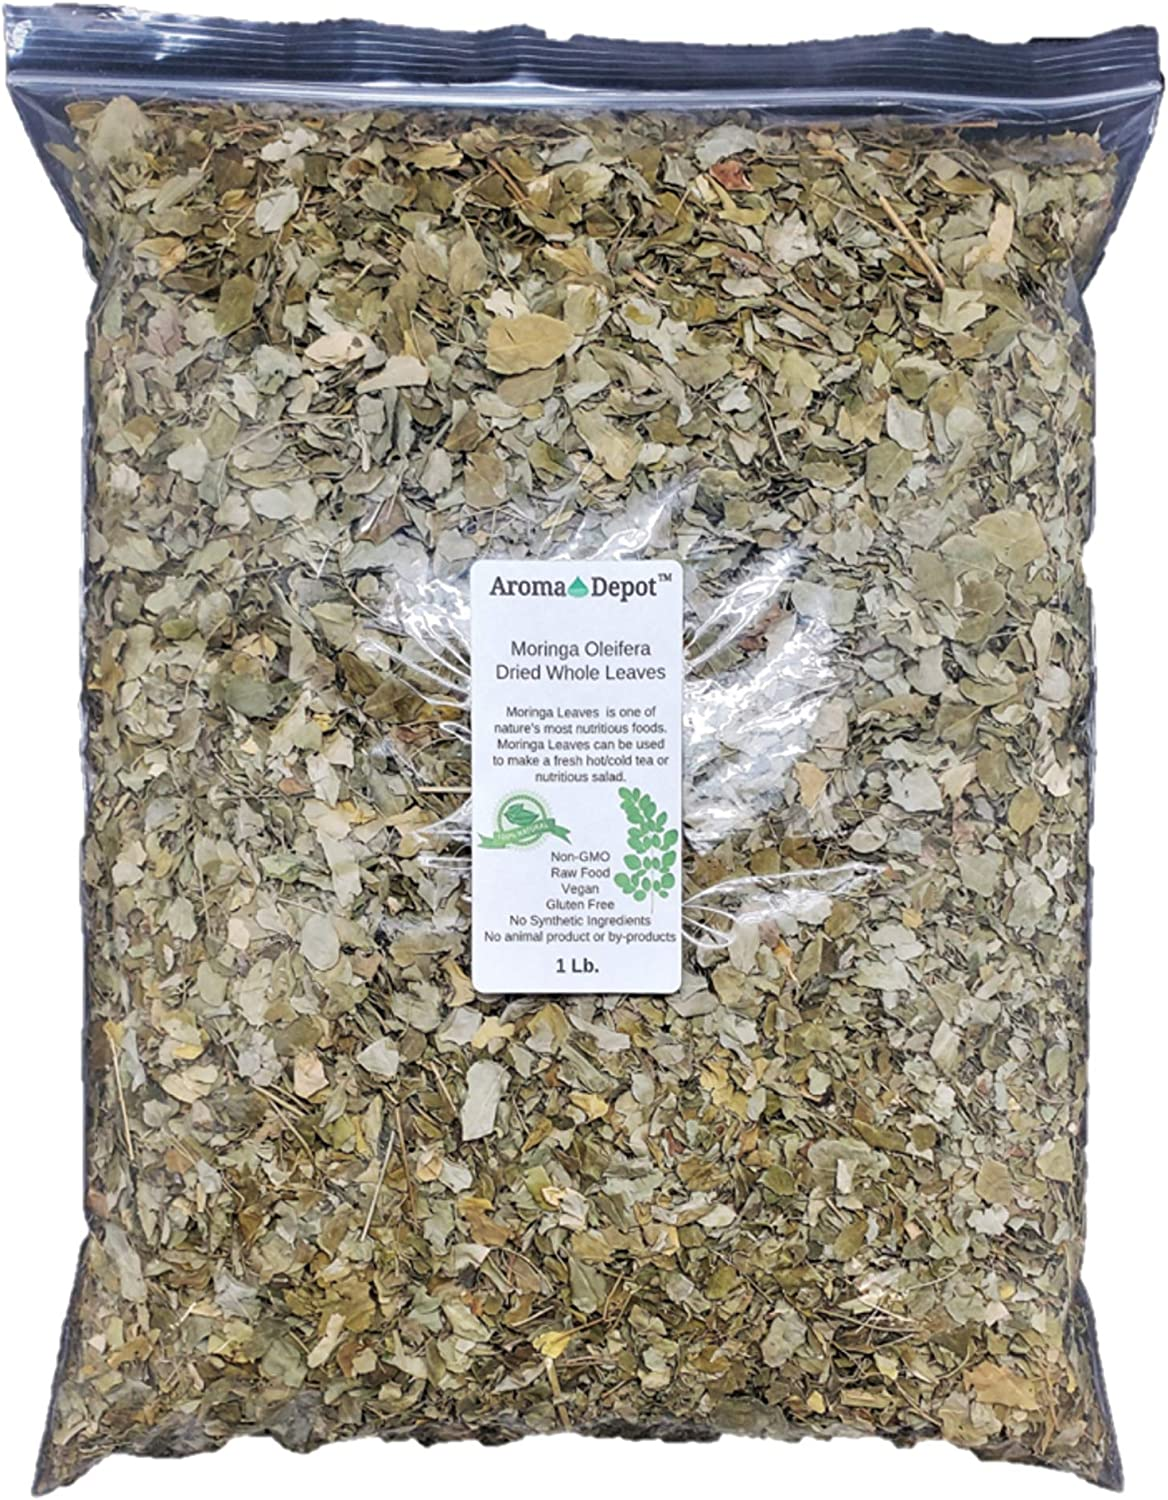 1 lb / 16 oz Dried Moringa Oleifera Whole Leaves 100% Natural Raw from India Organic Non-GMO and Gluten Free Great for Smoothies, Tea, Drinks & Recipes The Miracle Tree